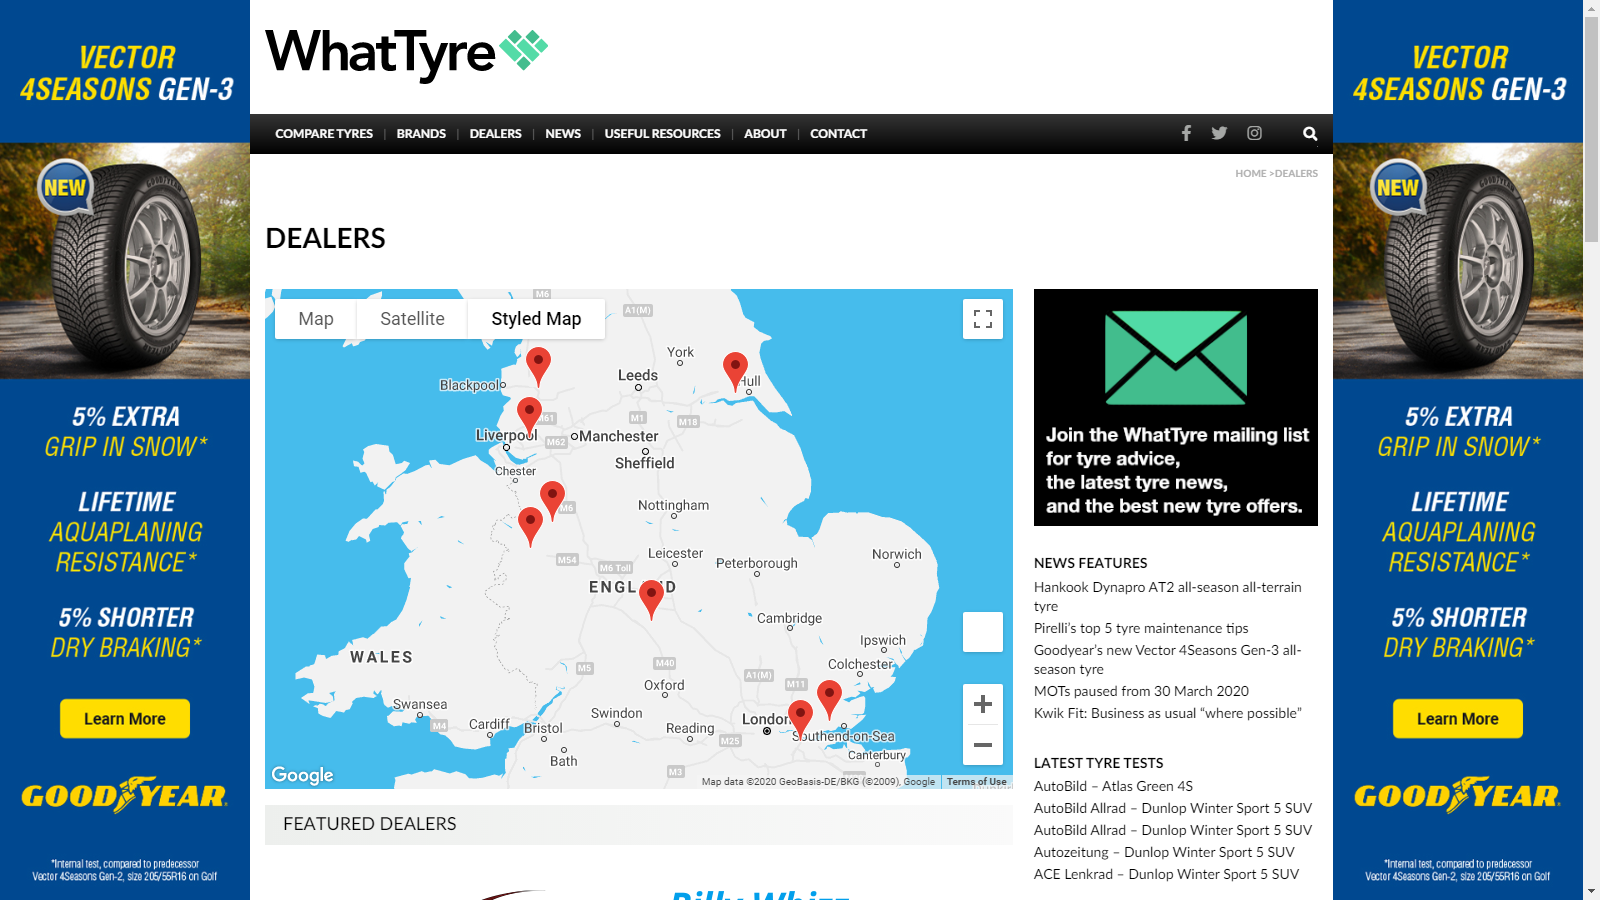 WhatTyre Dealer Listing (1 year recurring) - £250